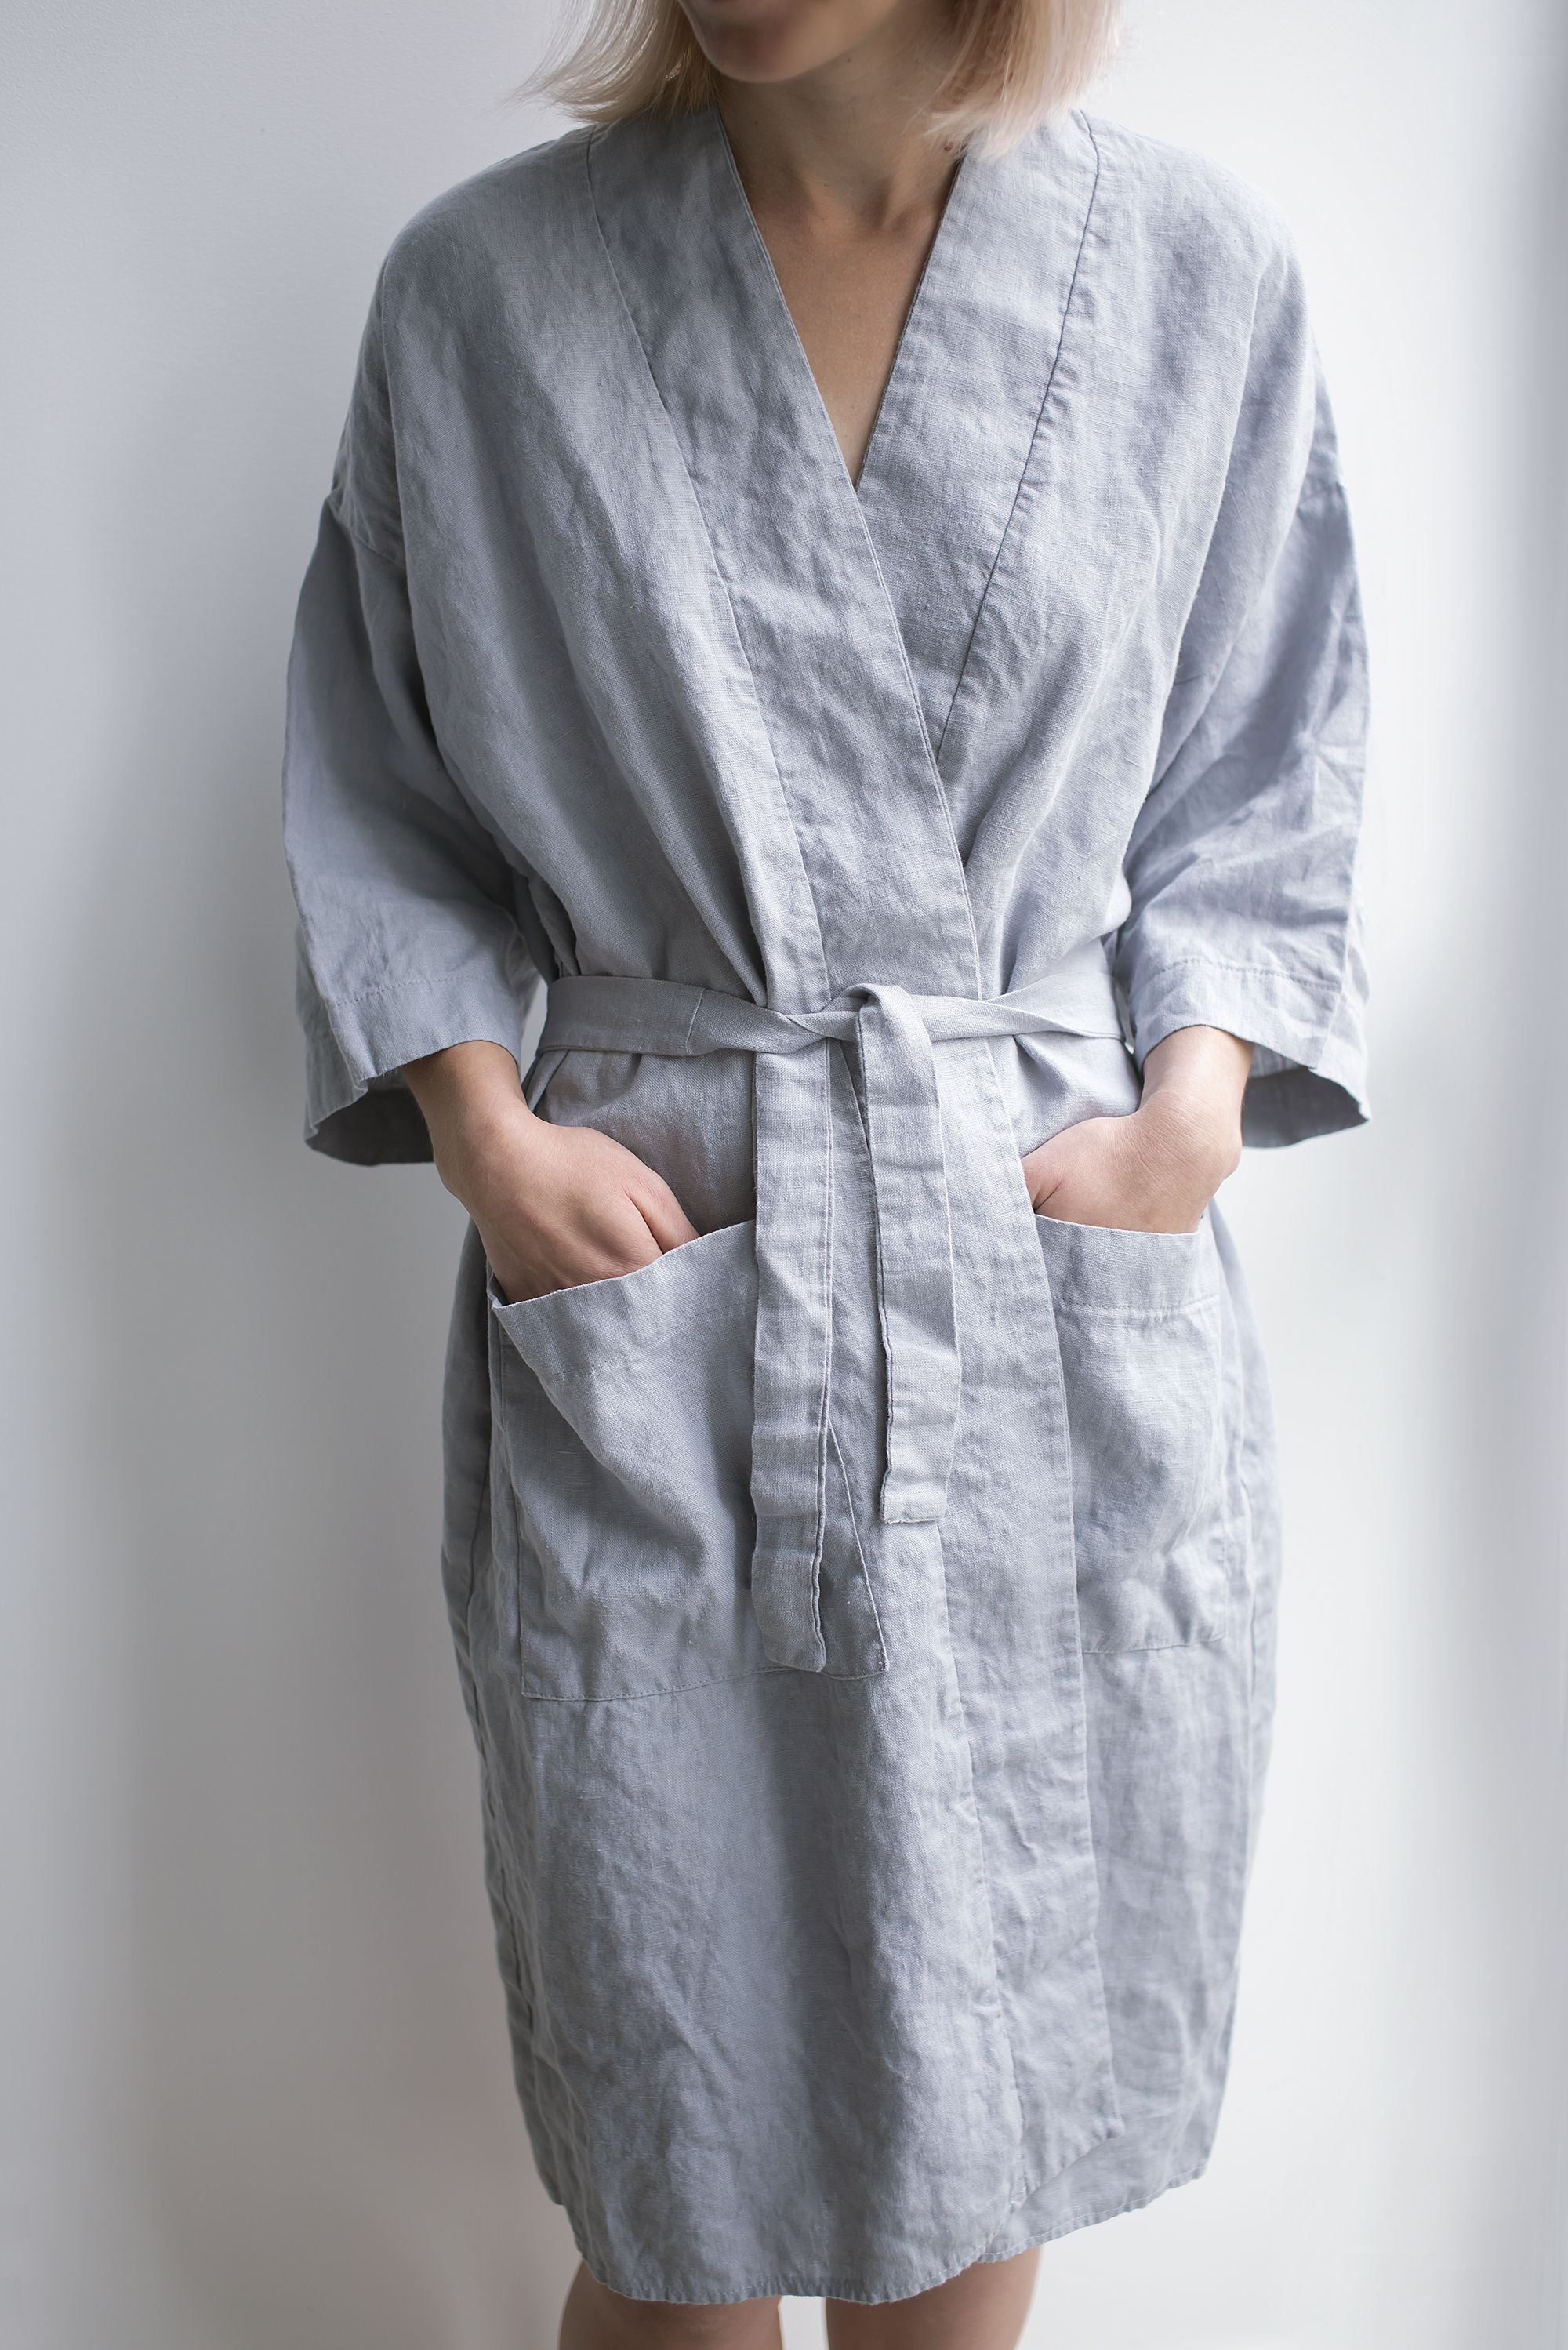 Kimono Dressing Gown Linen Nightgown Sustainable Clothes